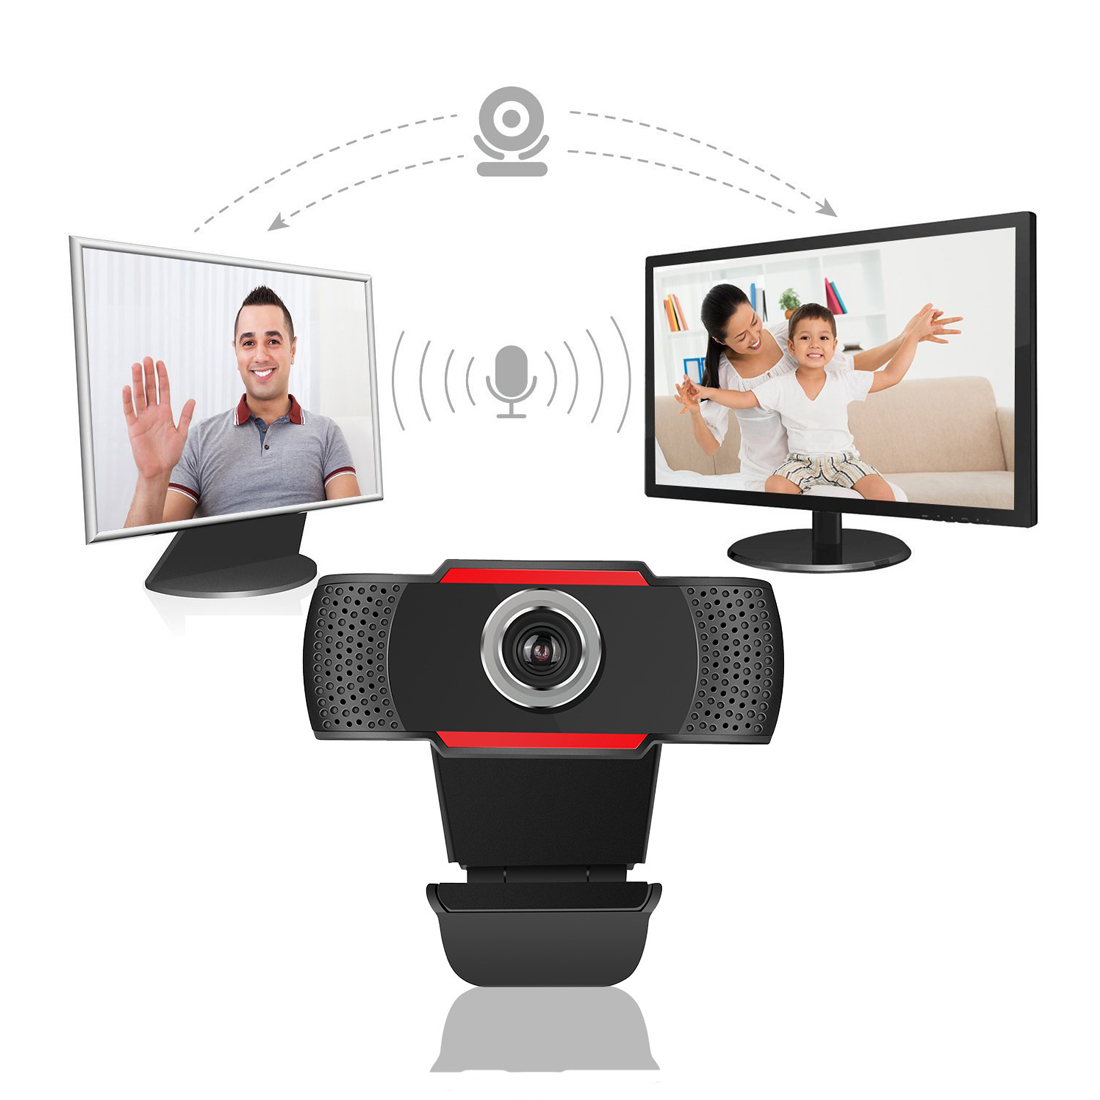 Usb web cam webcam hd 300 megapixel pc camera with for Camera tv web